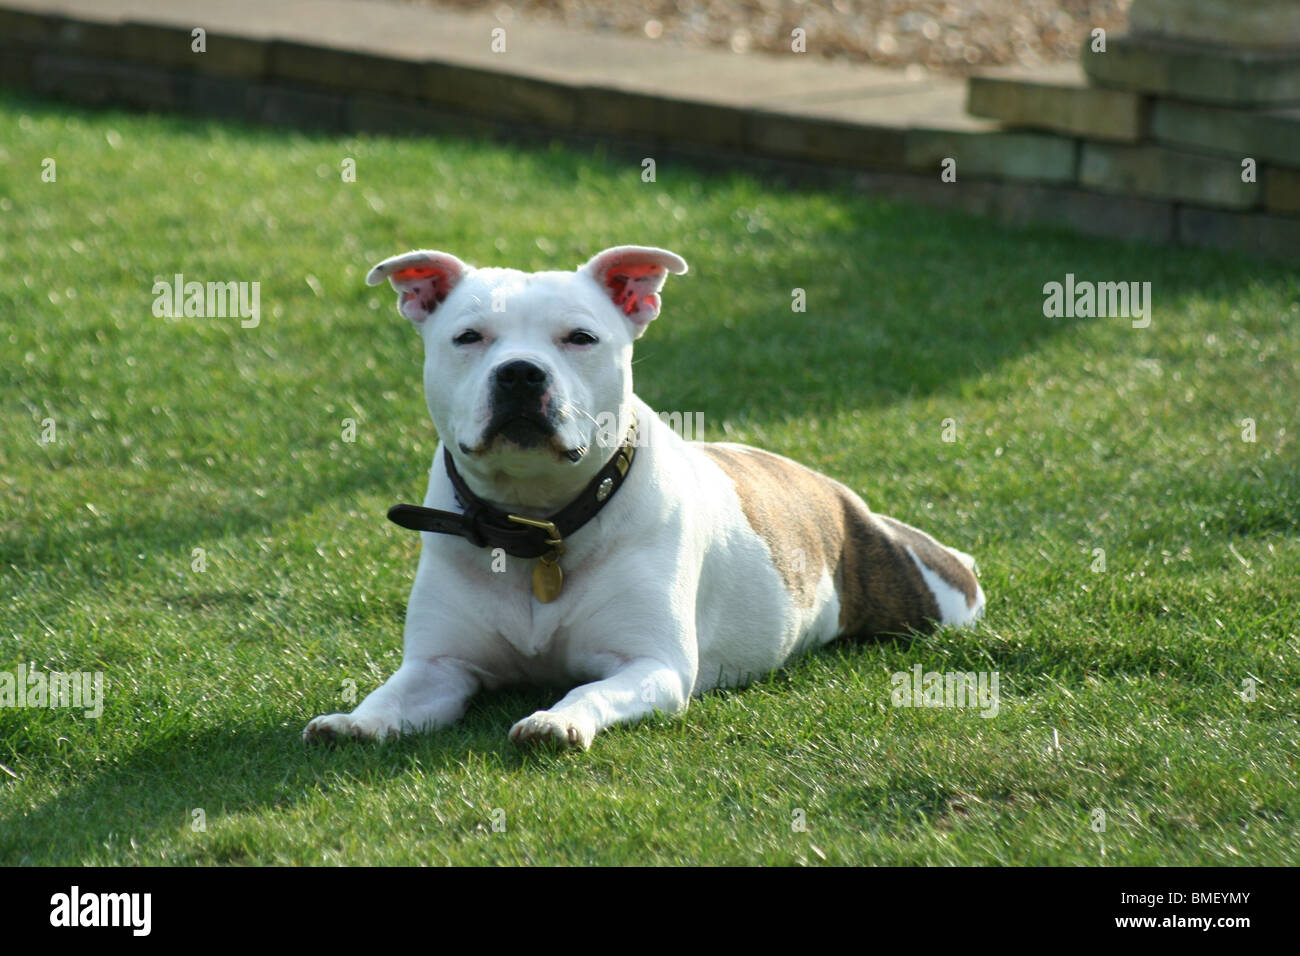 A young Staffordshire Bull Terrier - Stock Image